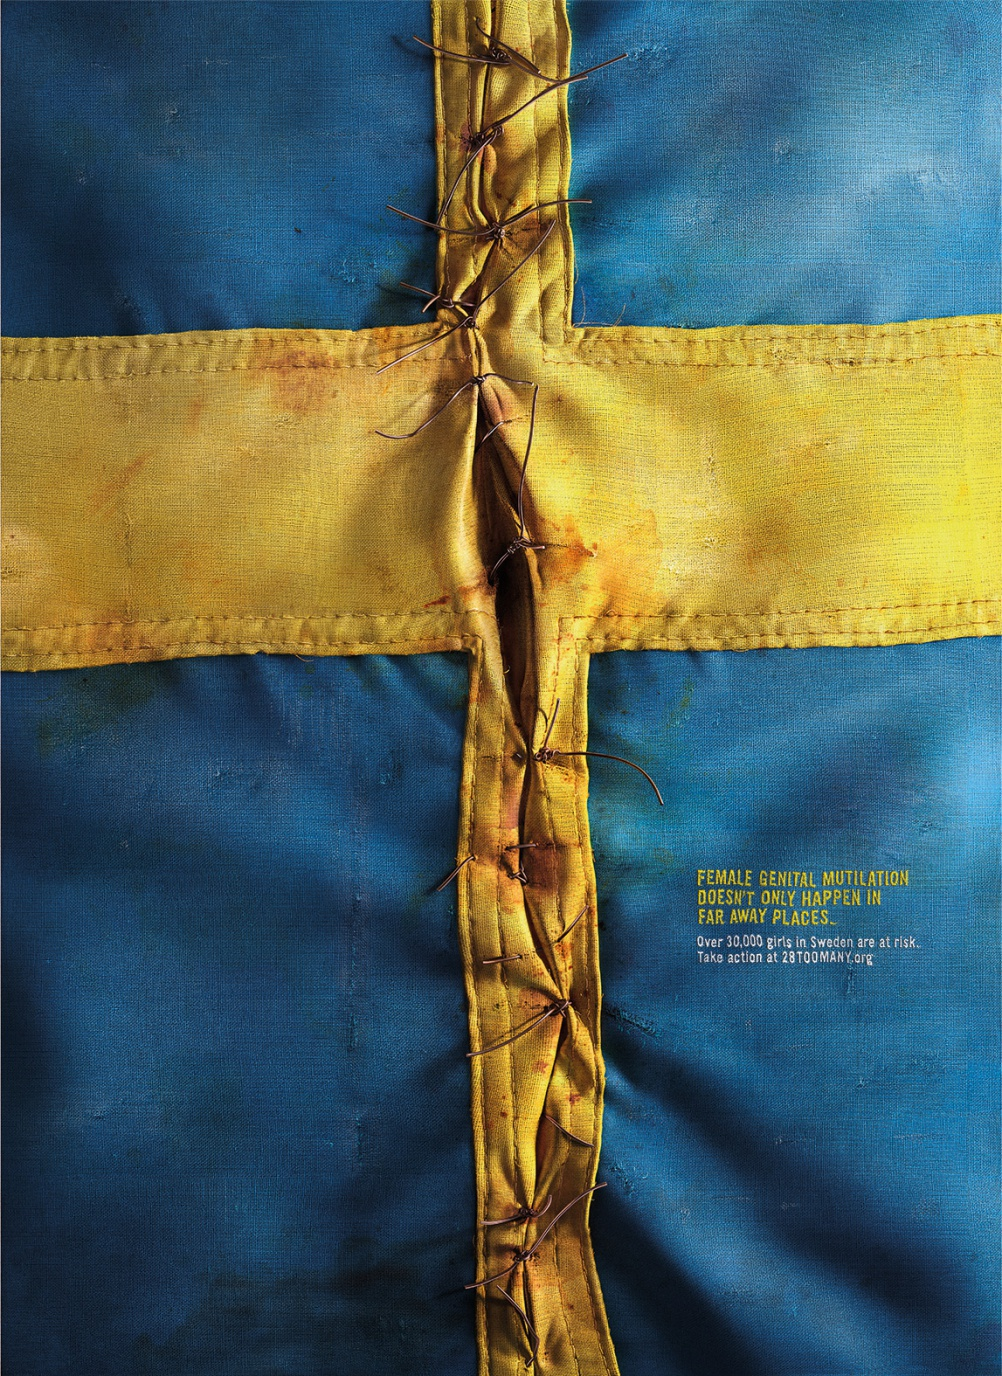 Ogilvy & Mather won Gold for its FGM Awareness poster for 28 Too Many Sweden